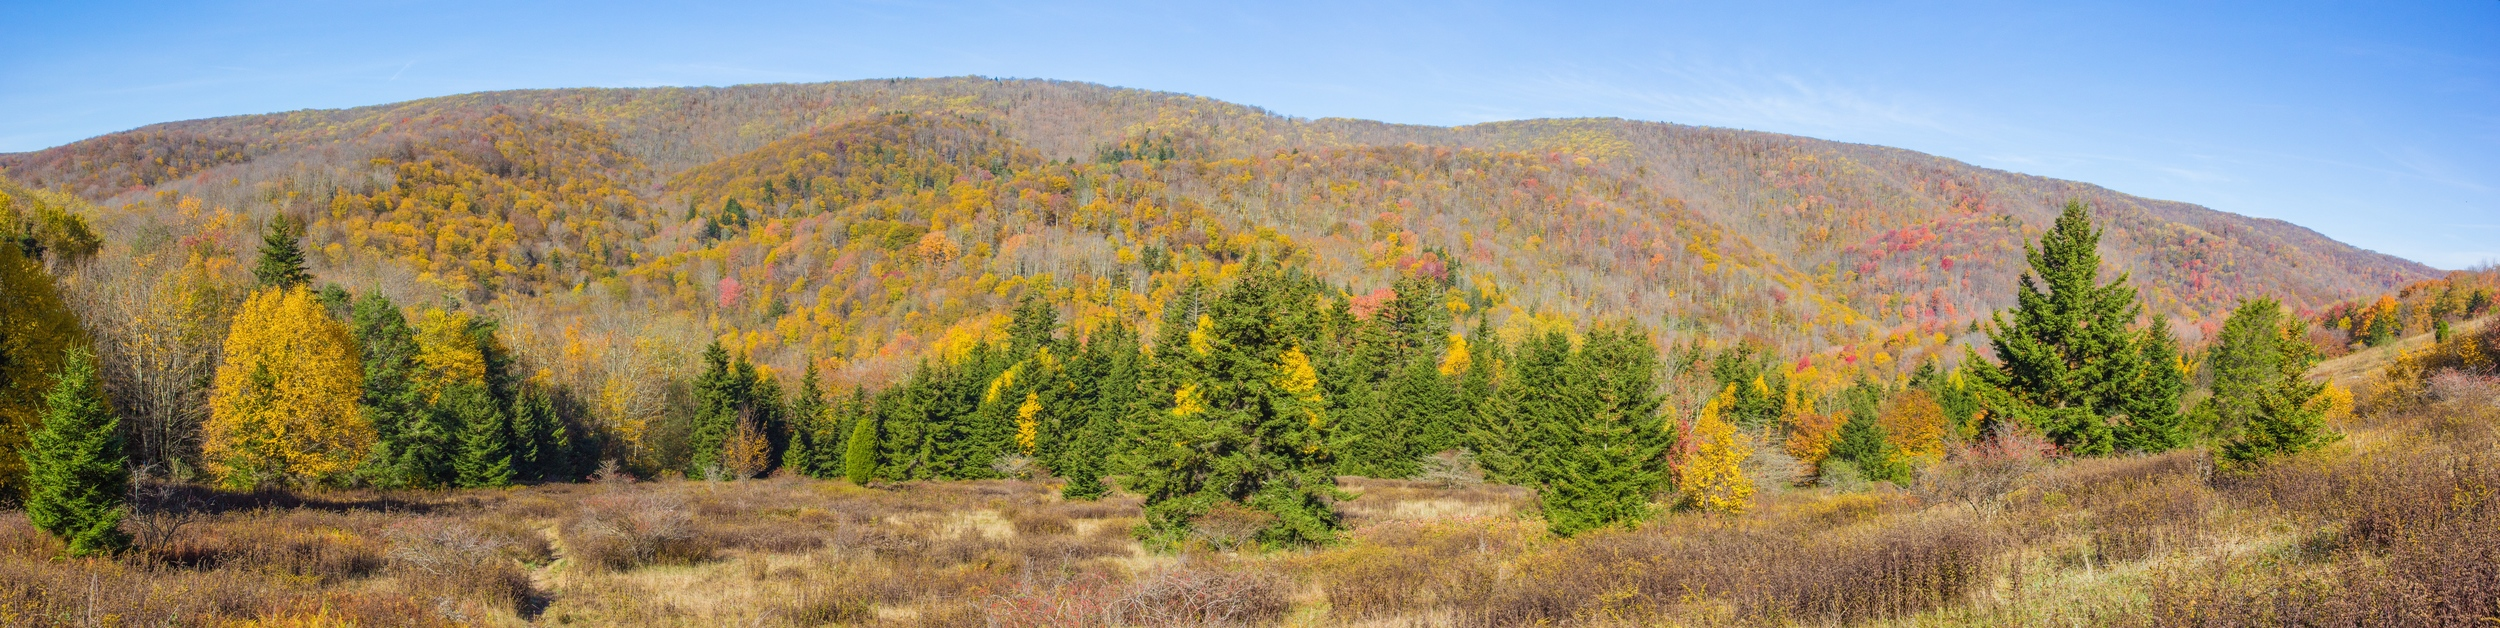 Panoramic view of the Seneca Creek watershed. Taken from a high meadow on Spruce Knob.